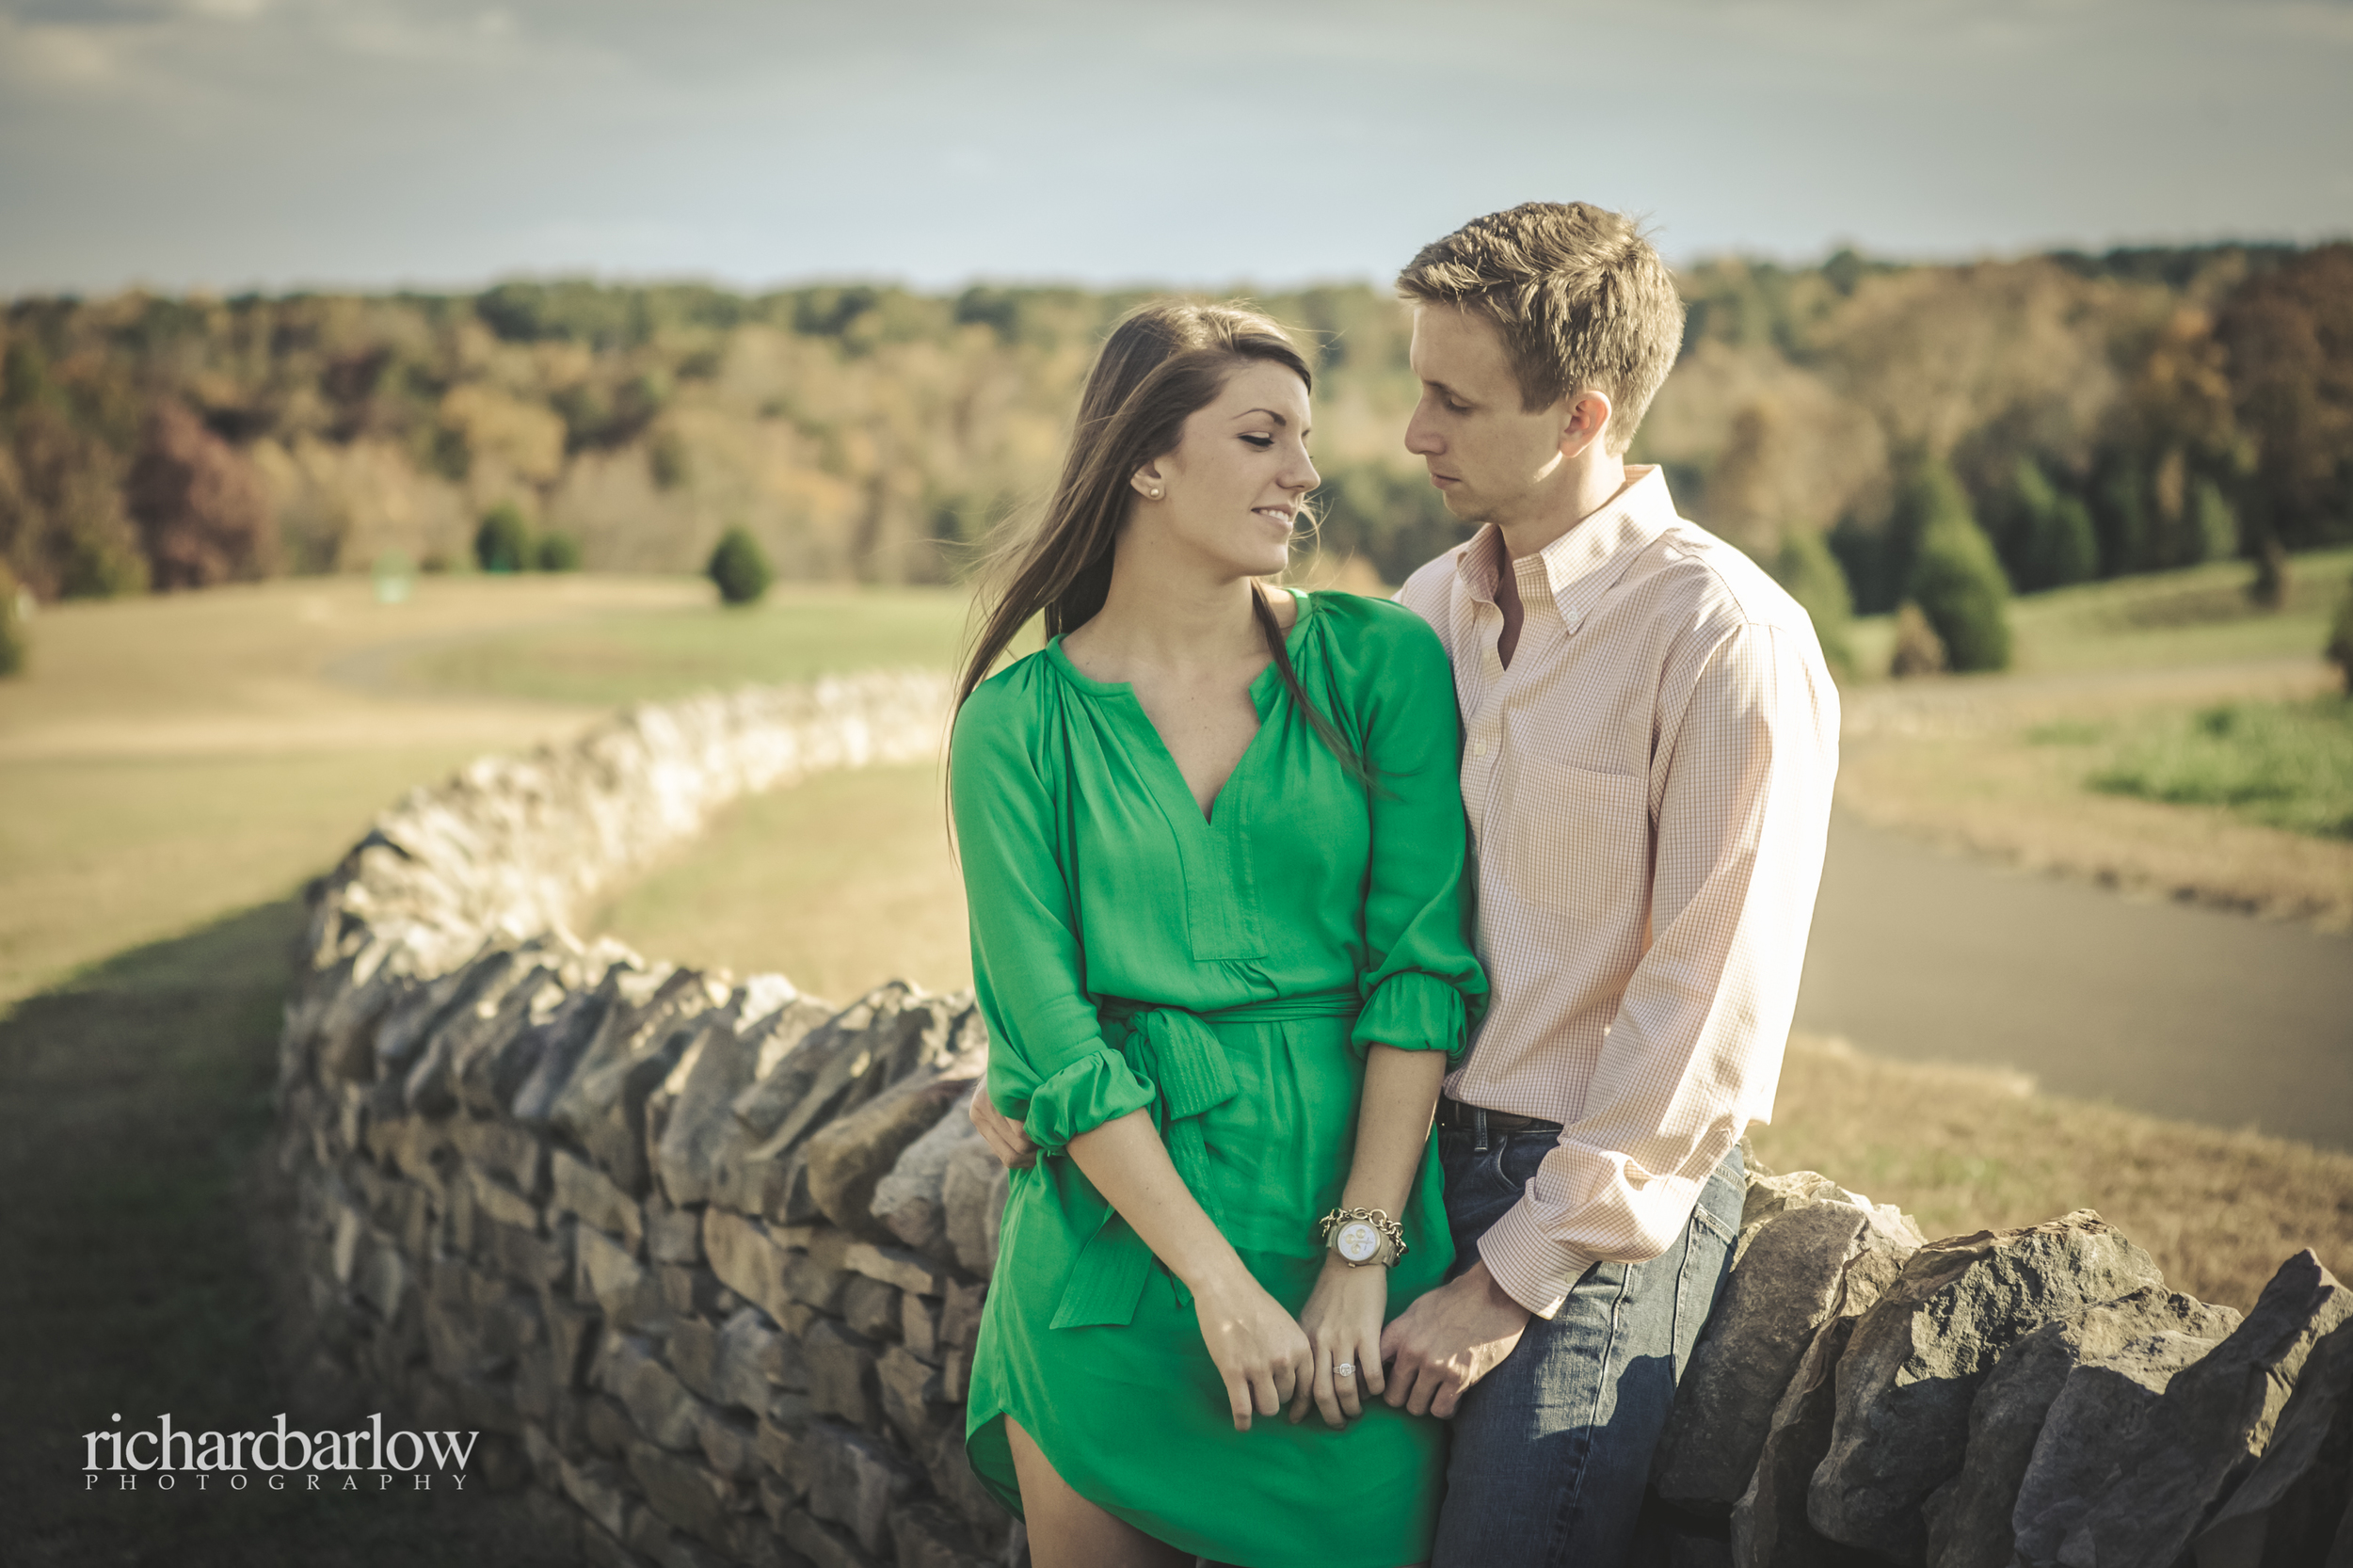 richard barlow photography - Graham and Lauren Engagement Session Wake Forest-15.jpg